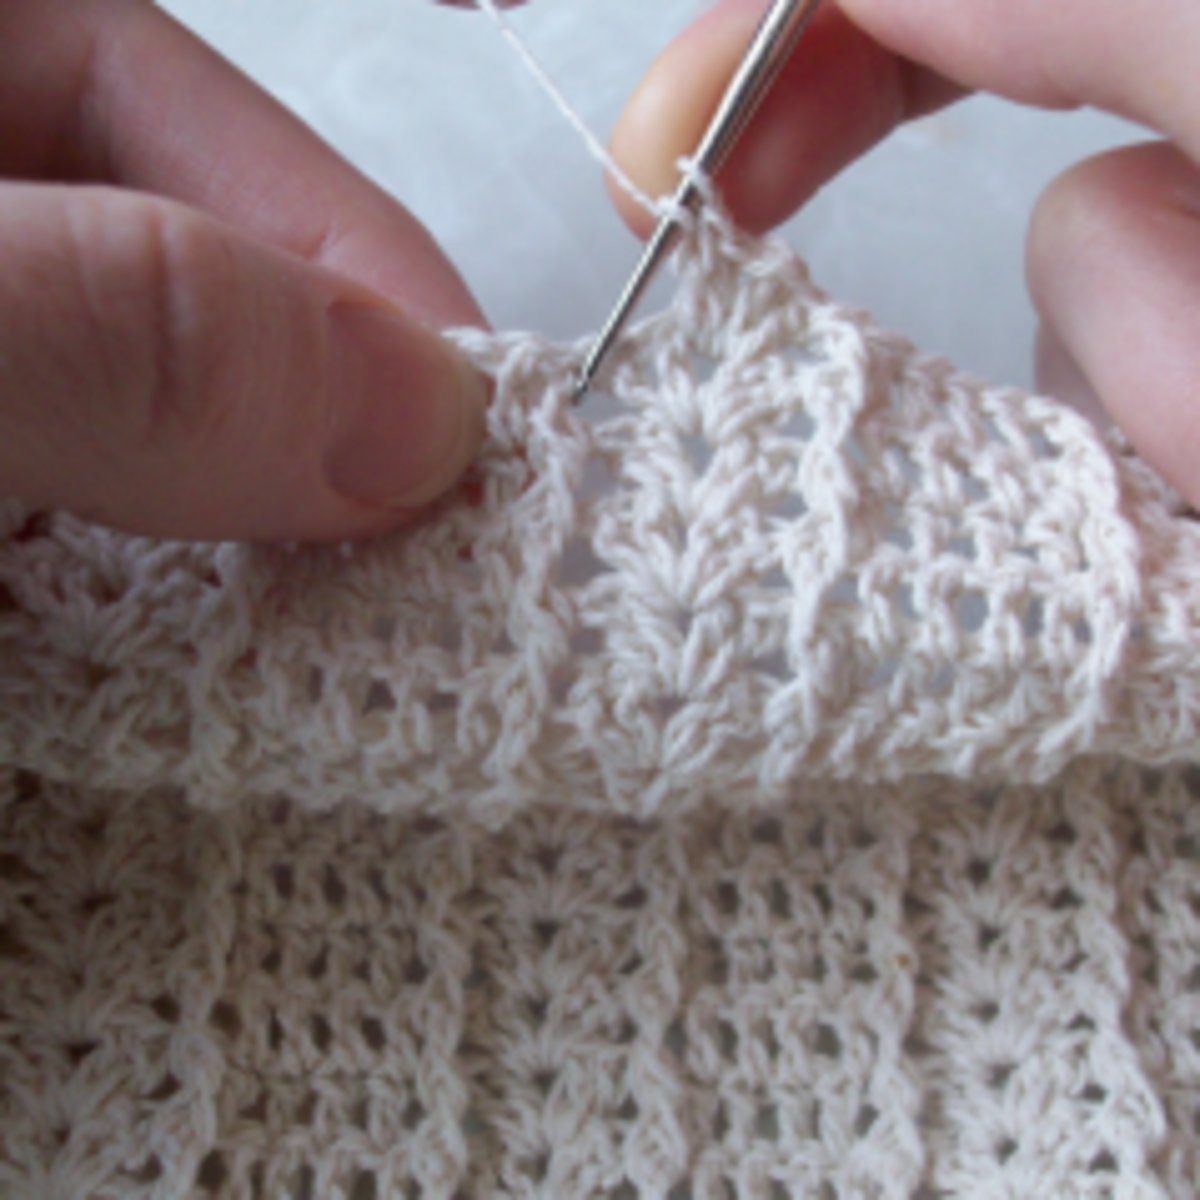 Health Benefits of Crocheting